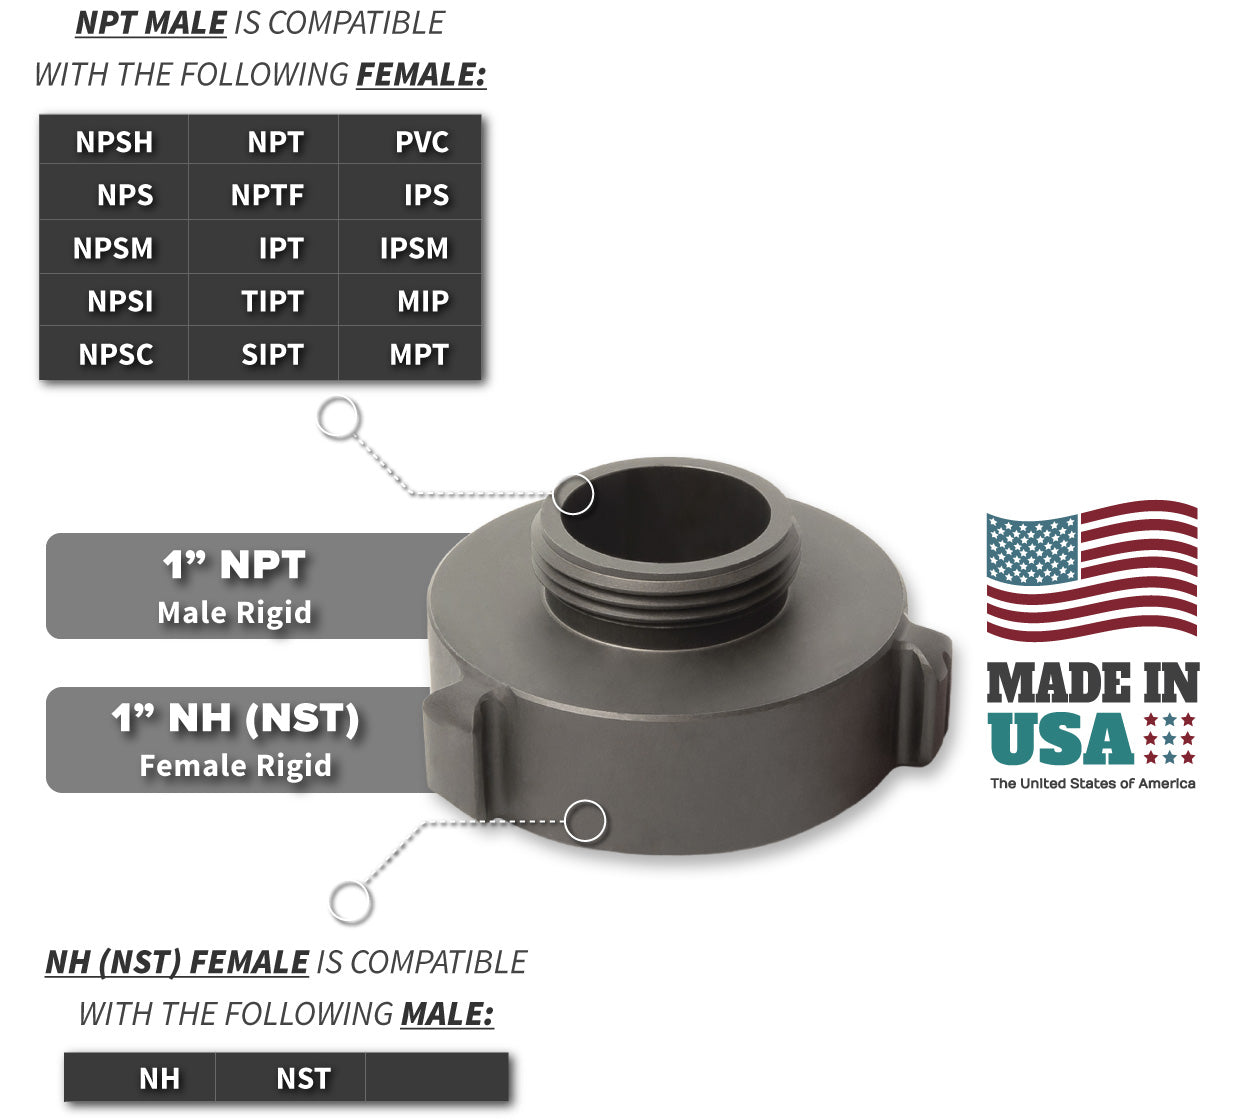 1 Inch NH-NST Female x 1 Inch NPT Male Compatibility Thread Chart